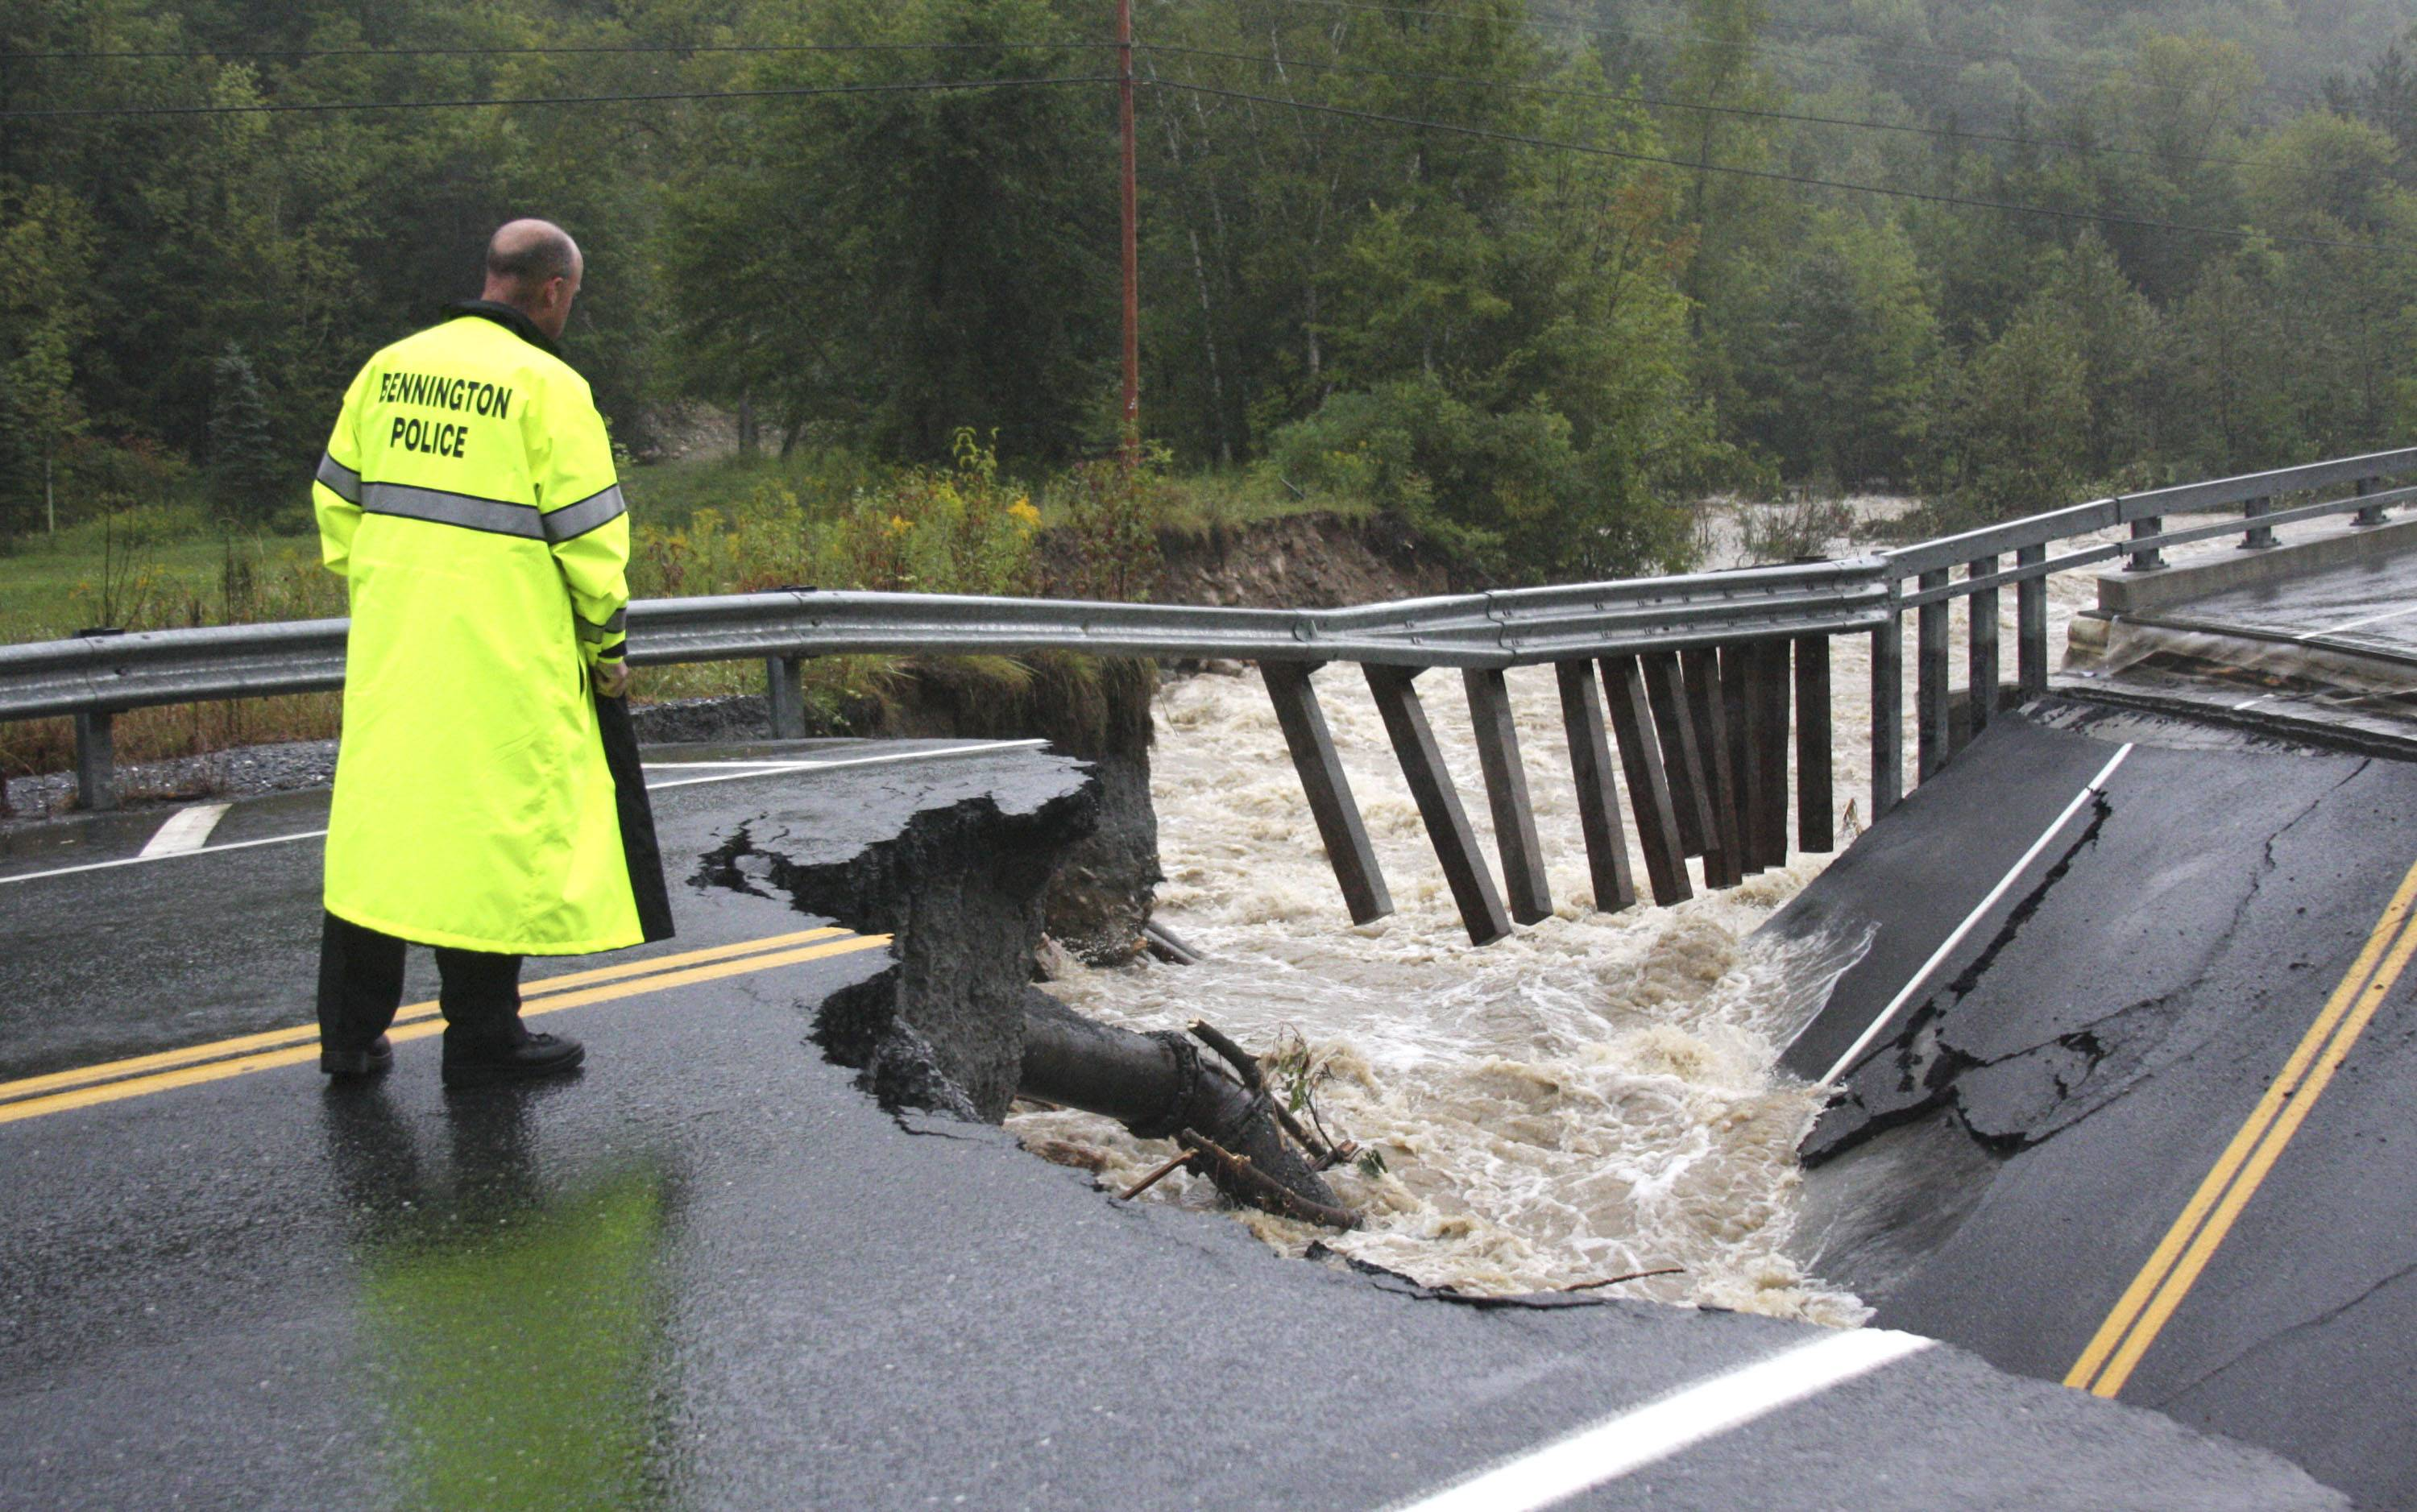 Irene spares big cities, but Vt. sees huge floods